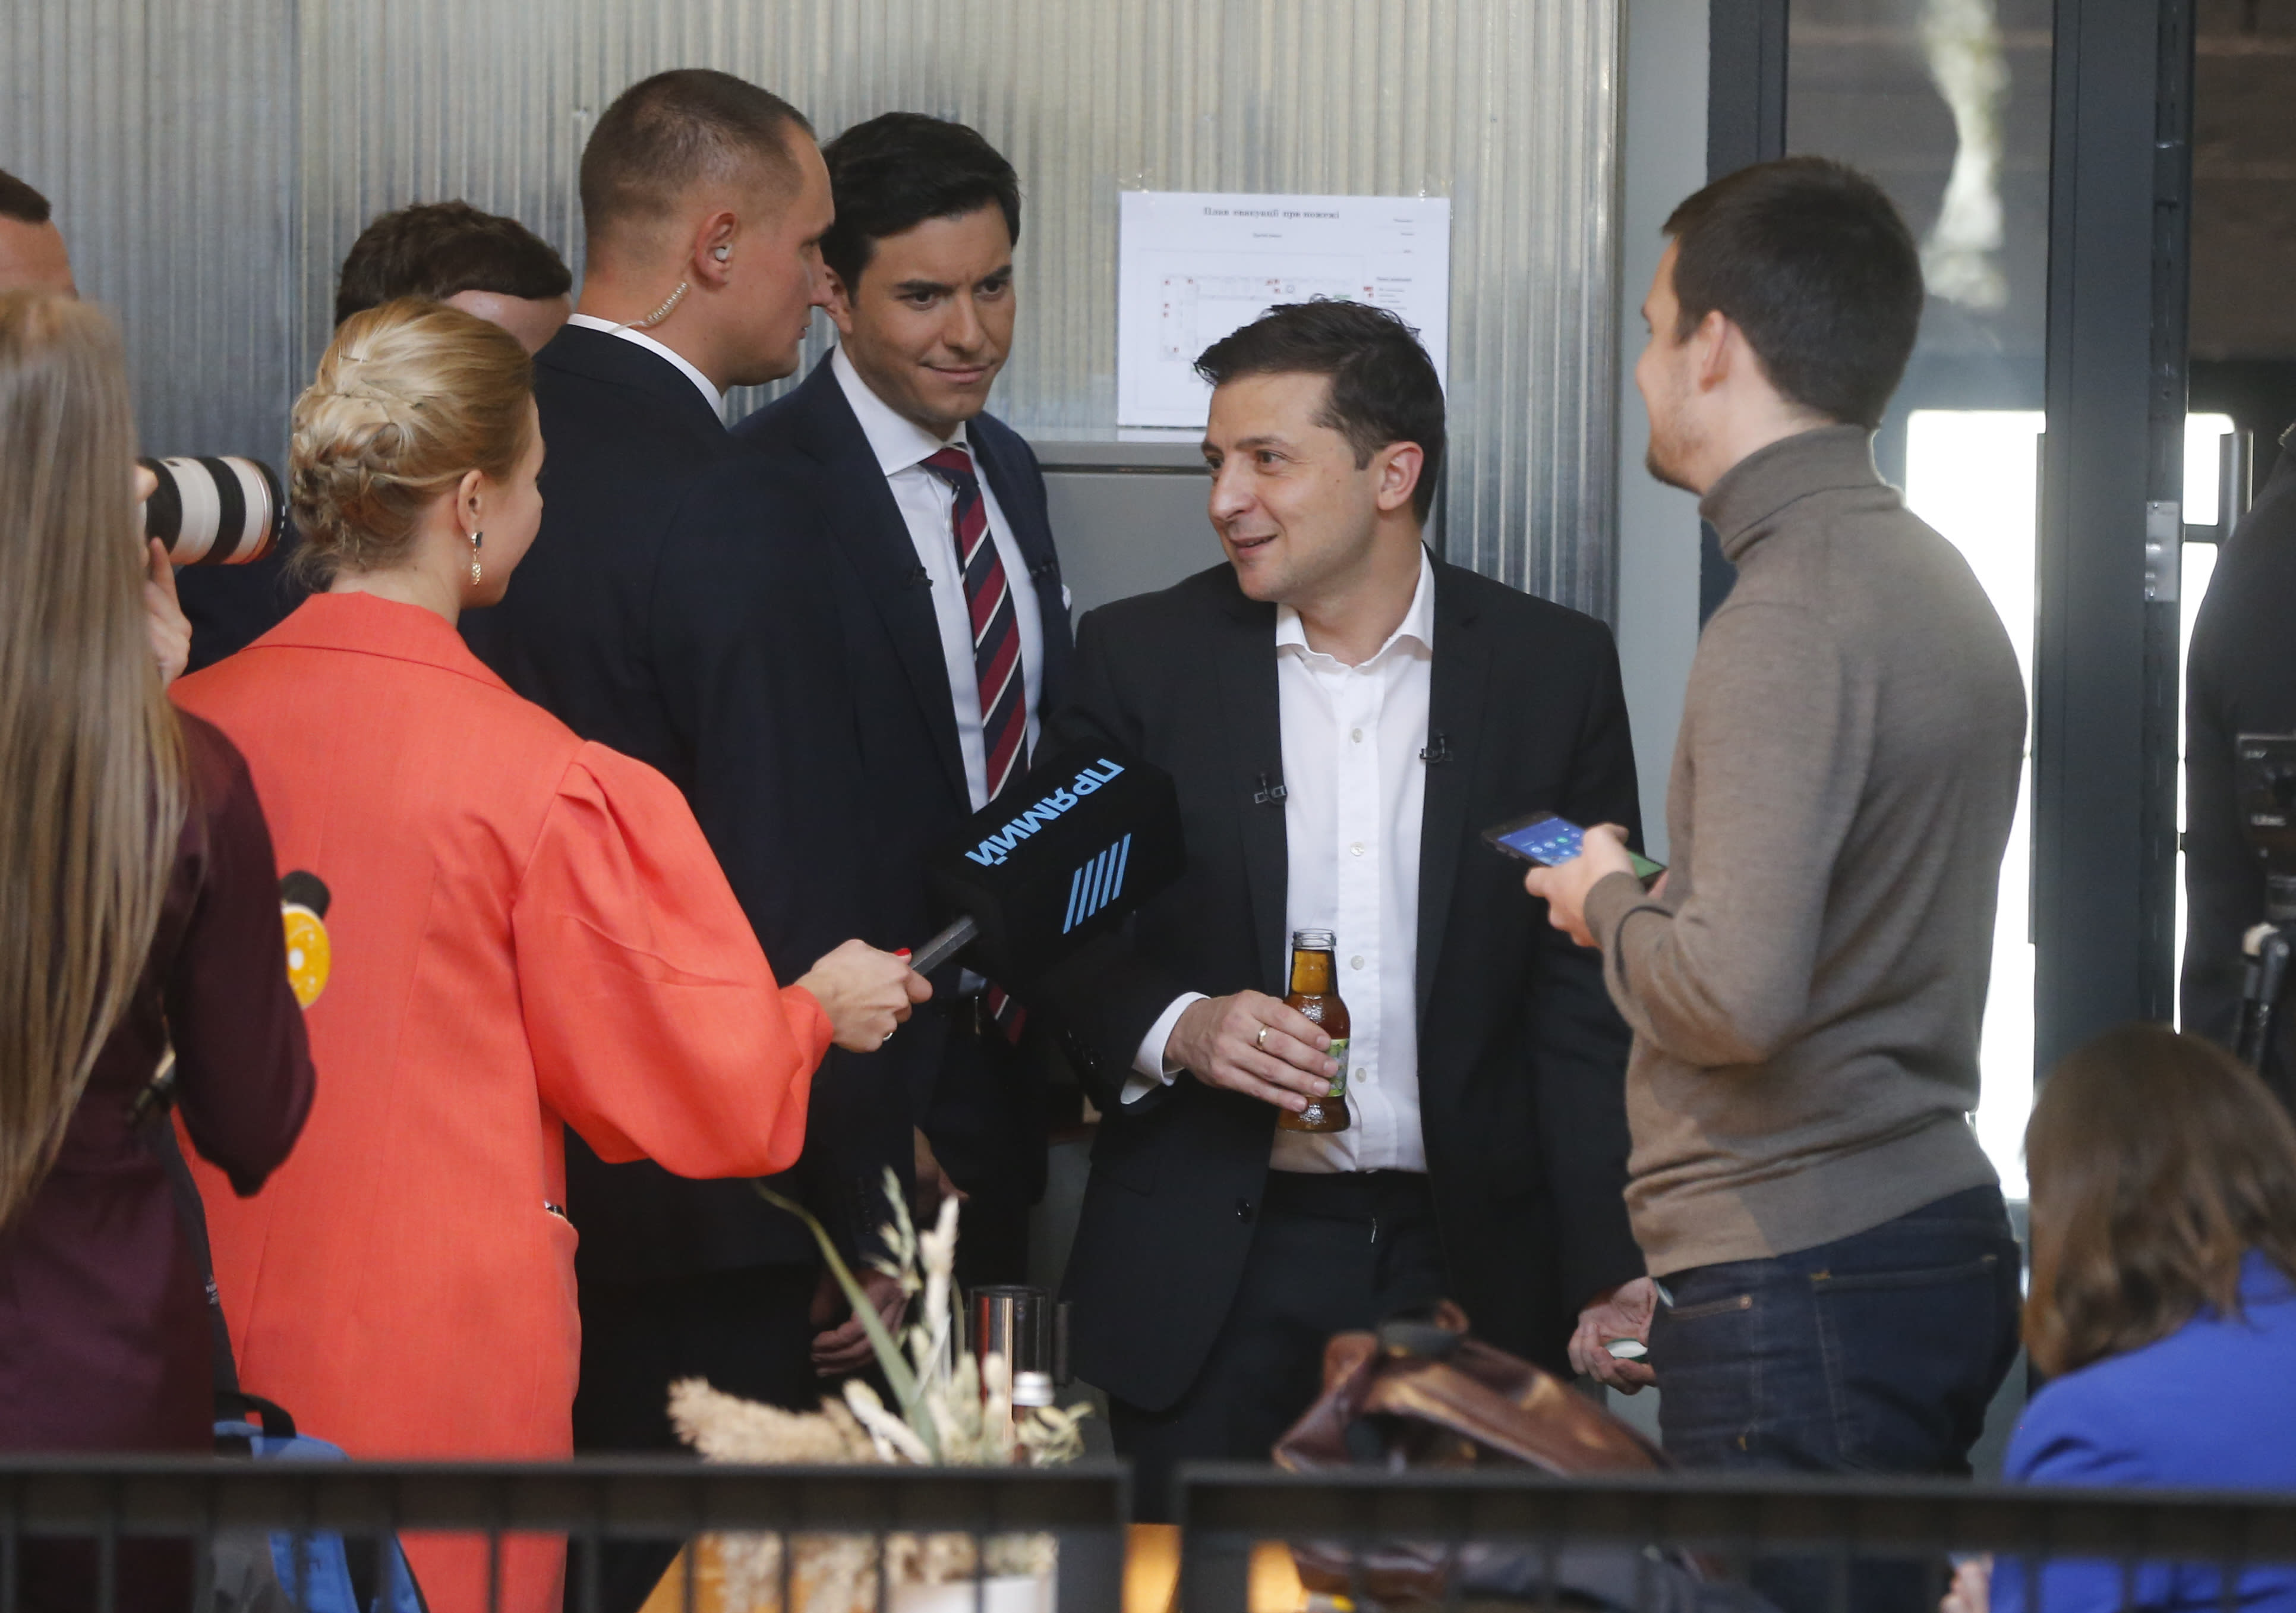 """Ukrainian President Volodymyr Zelenskiy speaks with journalists during in an all-day """"media marathon"""" held in a food court in Kyiv, Ukraine, Thursday, Oct. 10, 2019. Ukrainian President is holding an all-day """"media marathon"""" in a Kyiv food court amid growing questions about his actions as president. (AP Photo/Efrem Lukatsky)"""